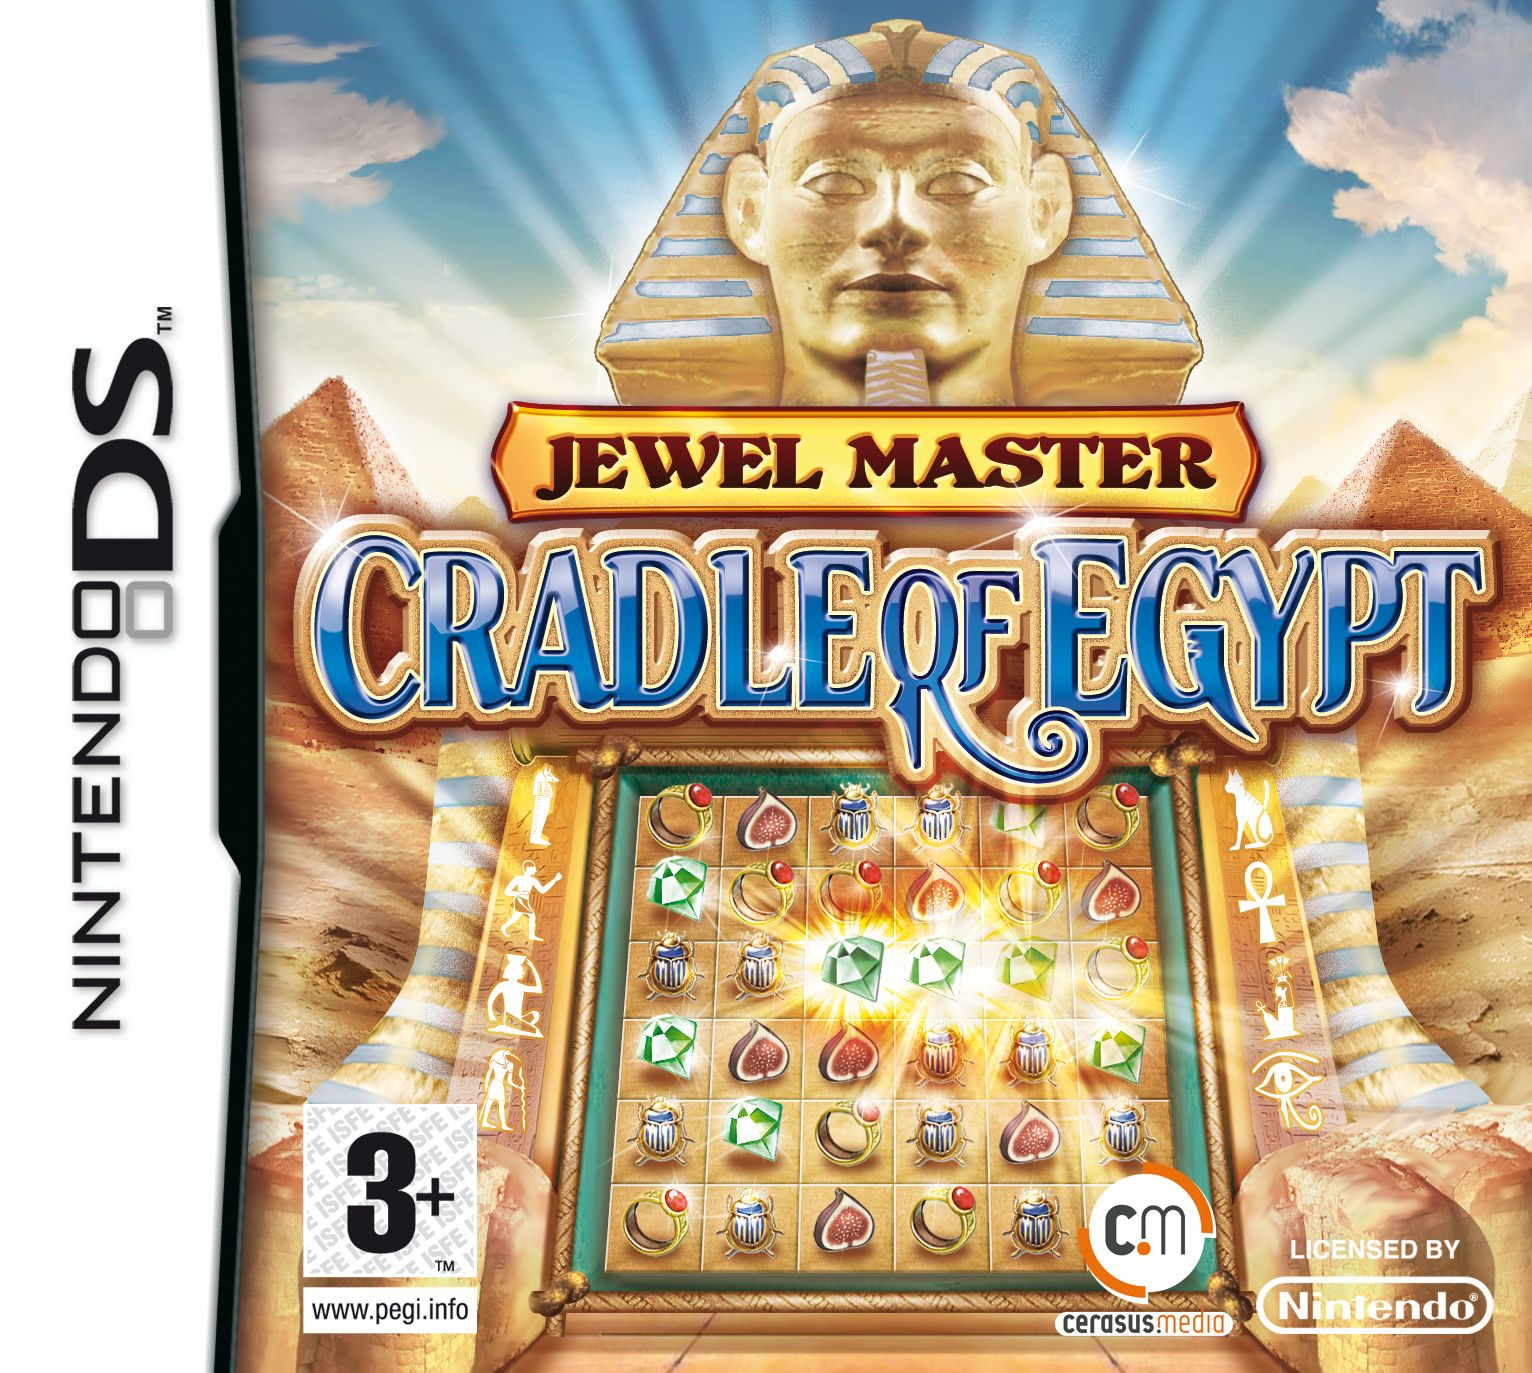 cradle of egypt da